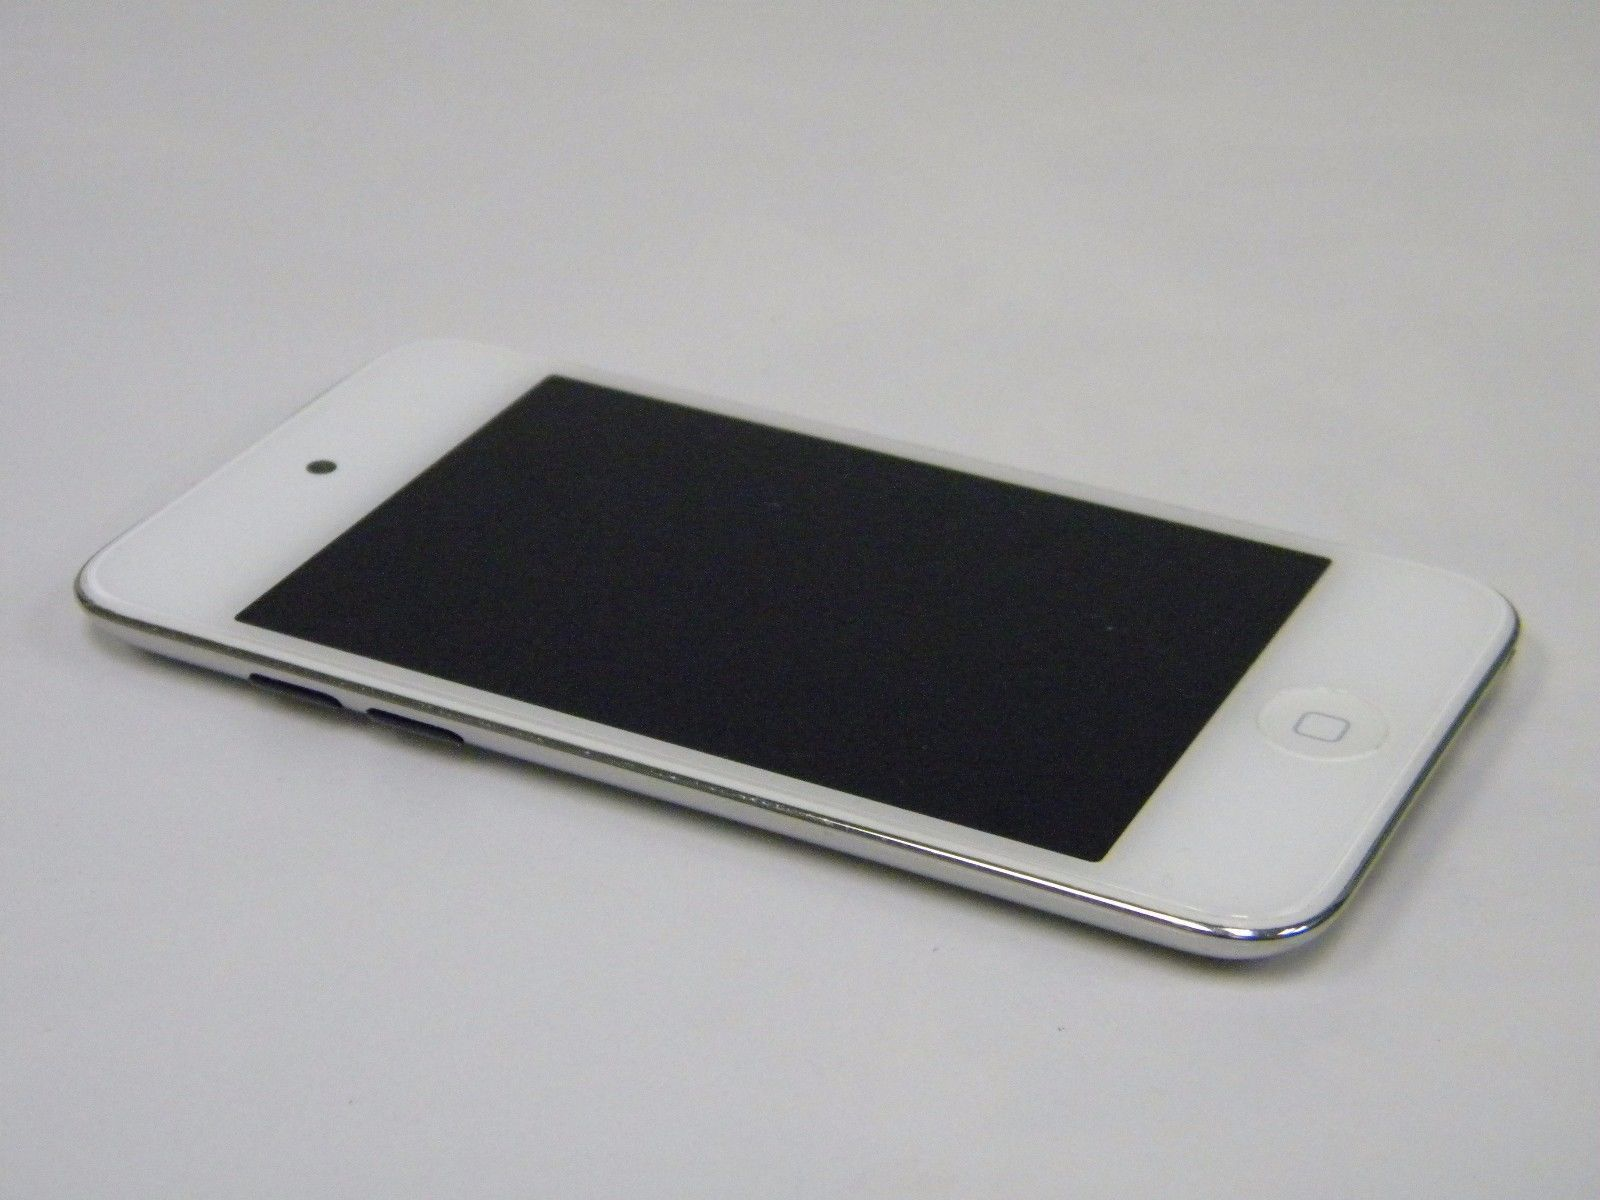 Primary image for Apple iPod Touch 4th Generation White (32 GB)